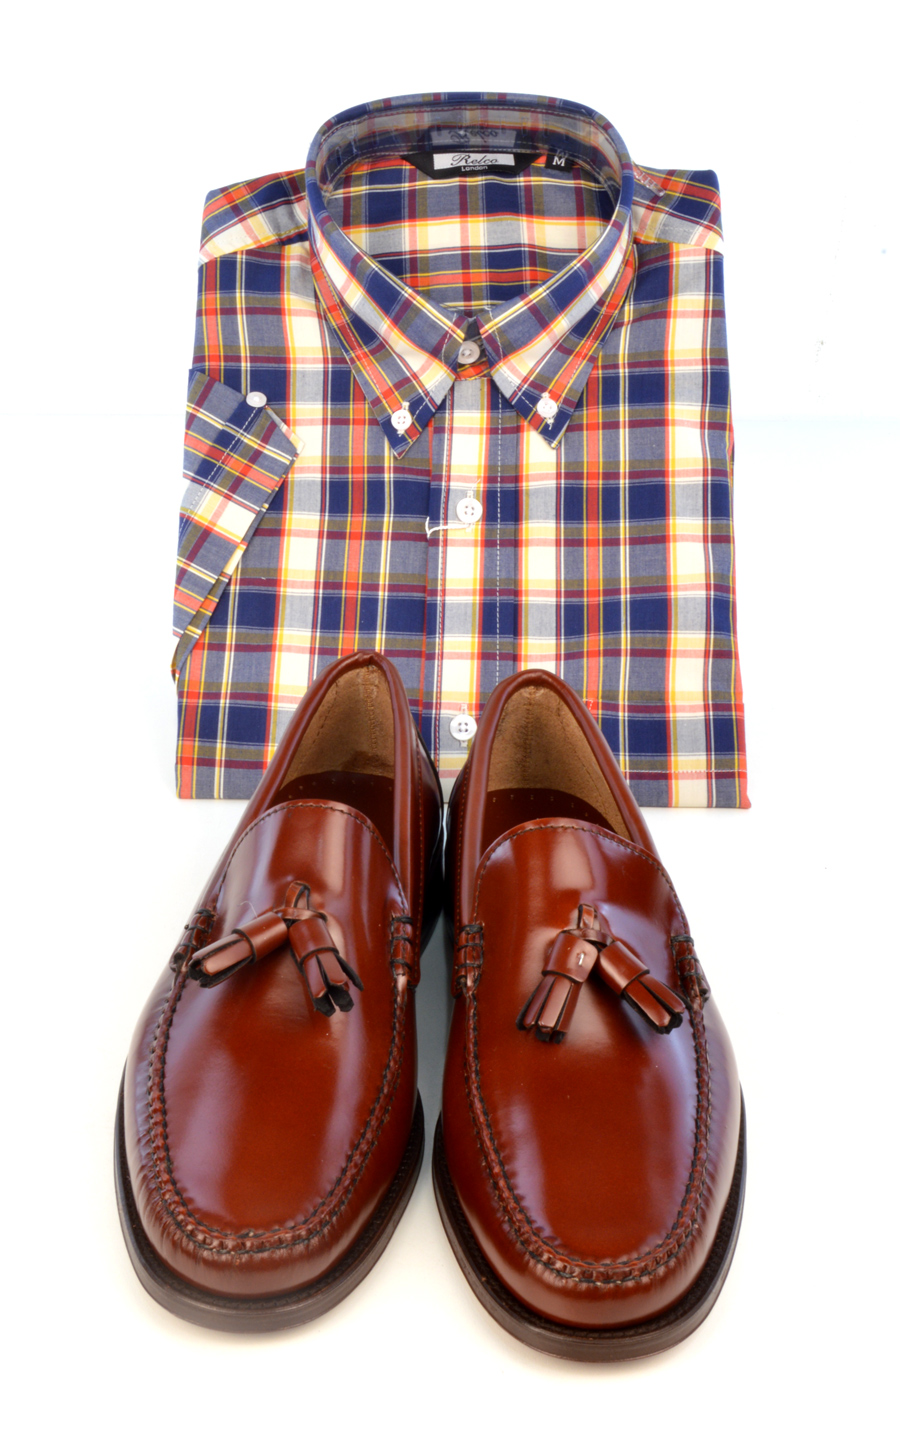 modshoes-lord-cheshnut-tassel-loafers-with-check-shirt